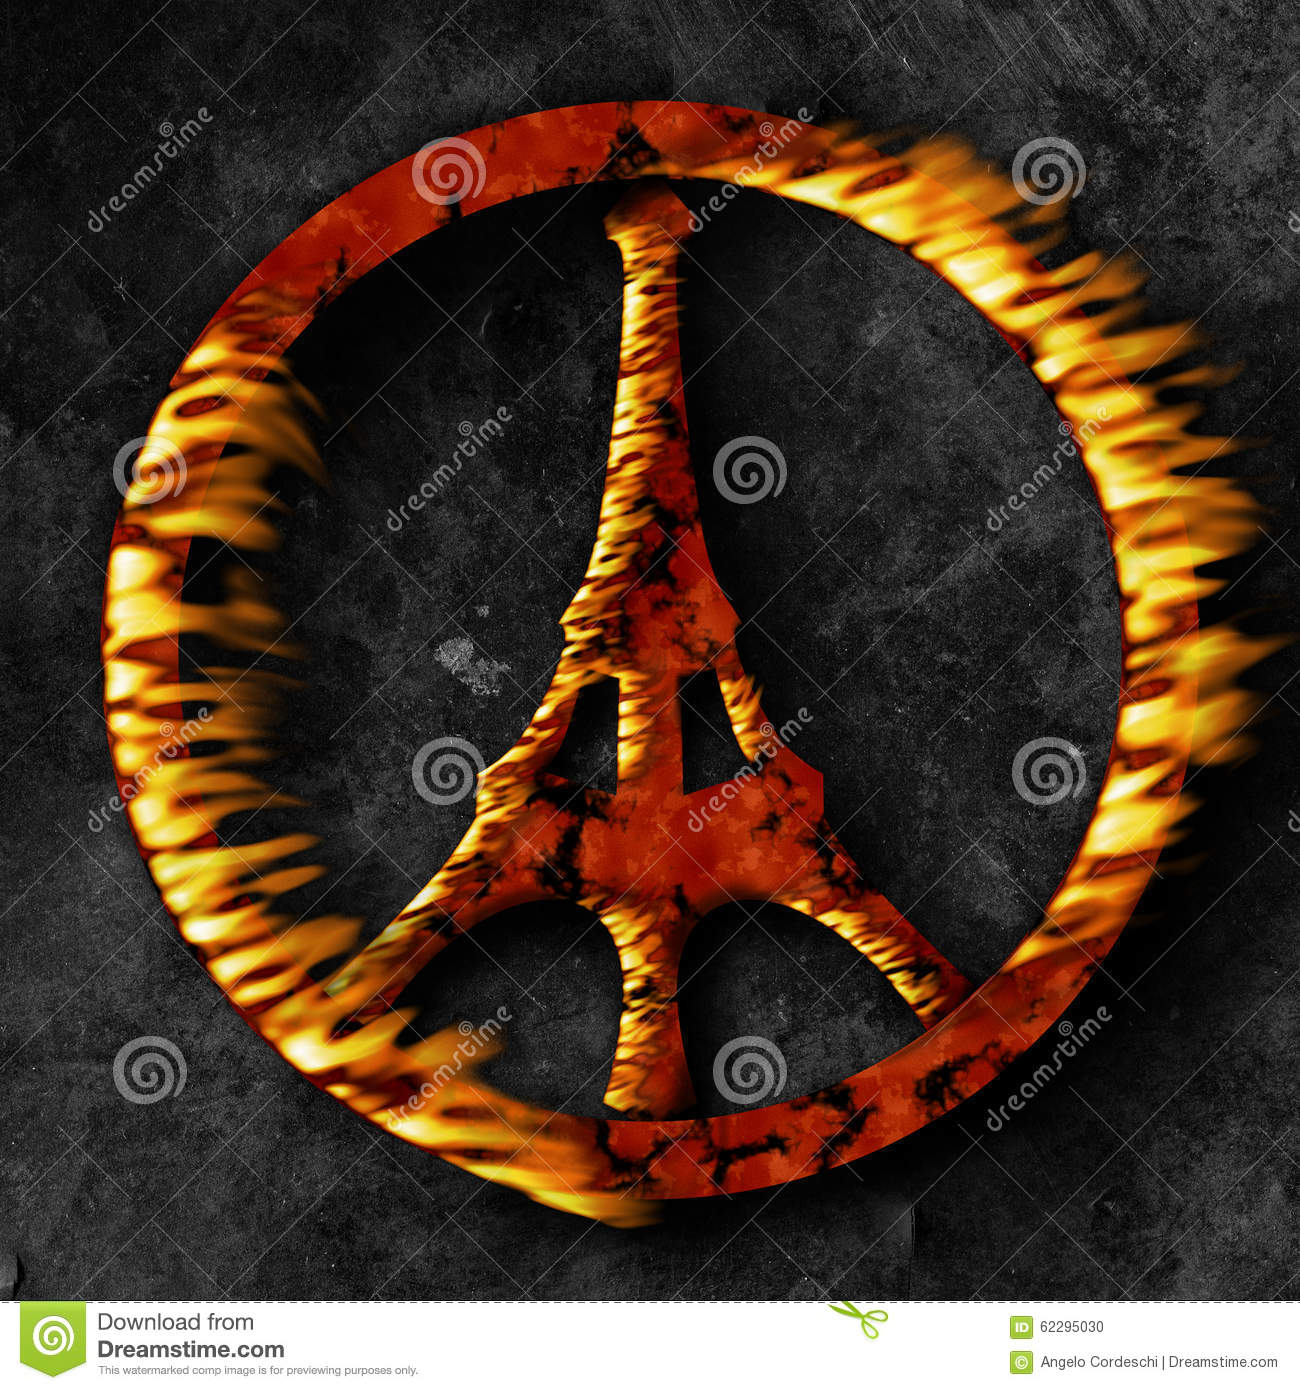 terrorism and world peace The war on terrorism can be won by specialist groups of meditators according to published scientific research read more.